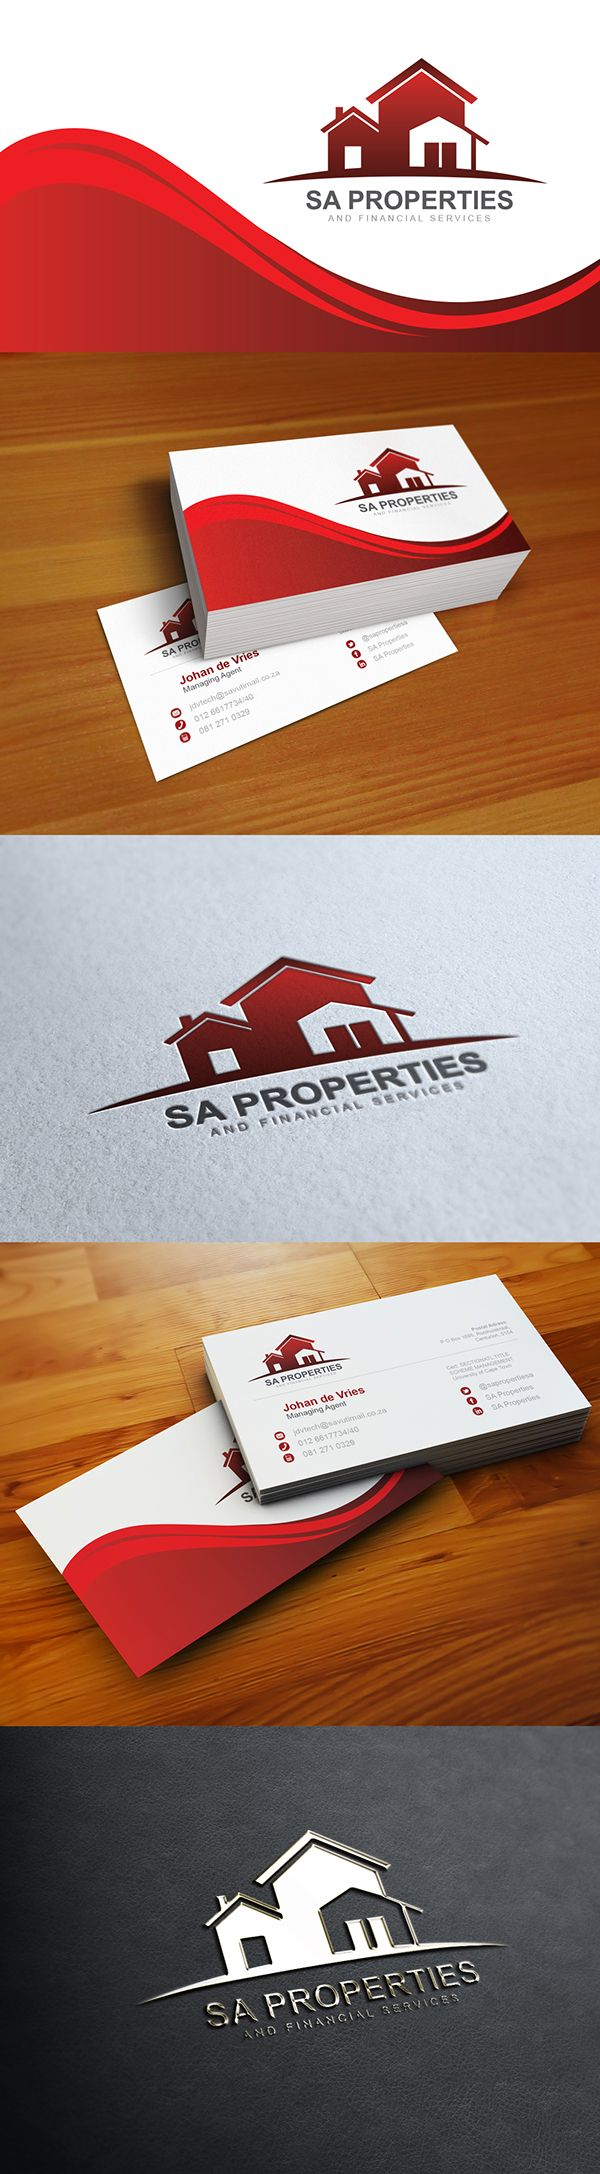 SA Properties and Financial Services | Branding on Behance